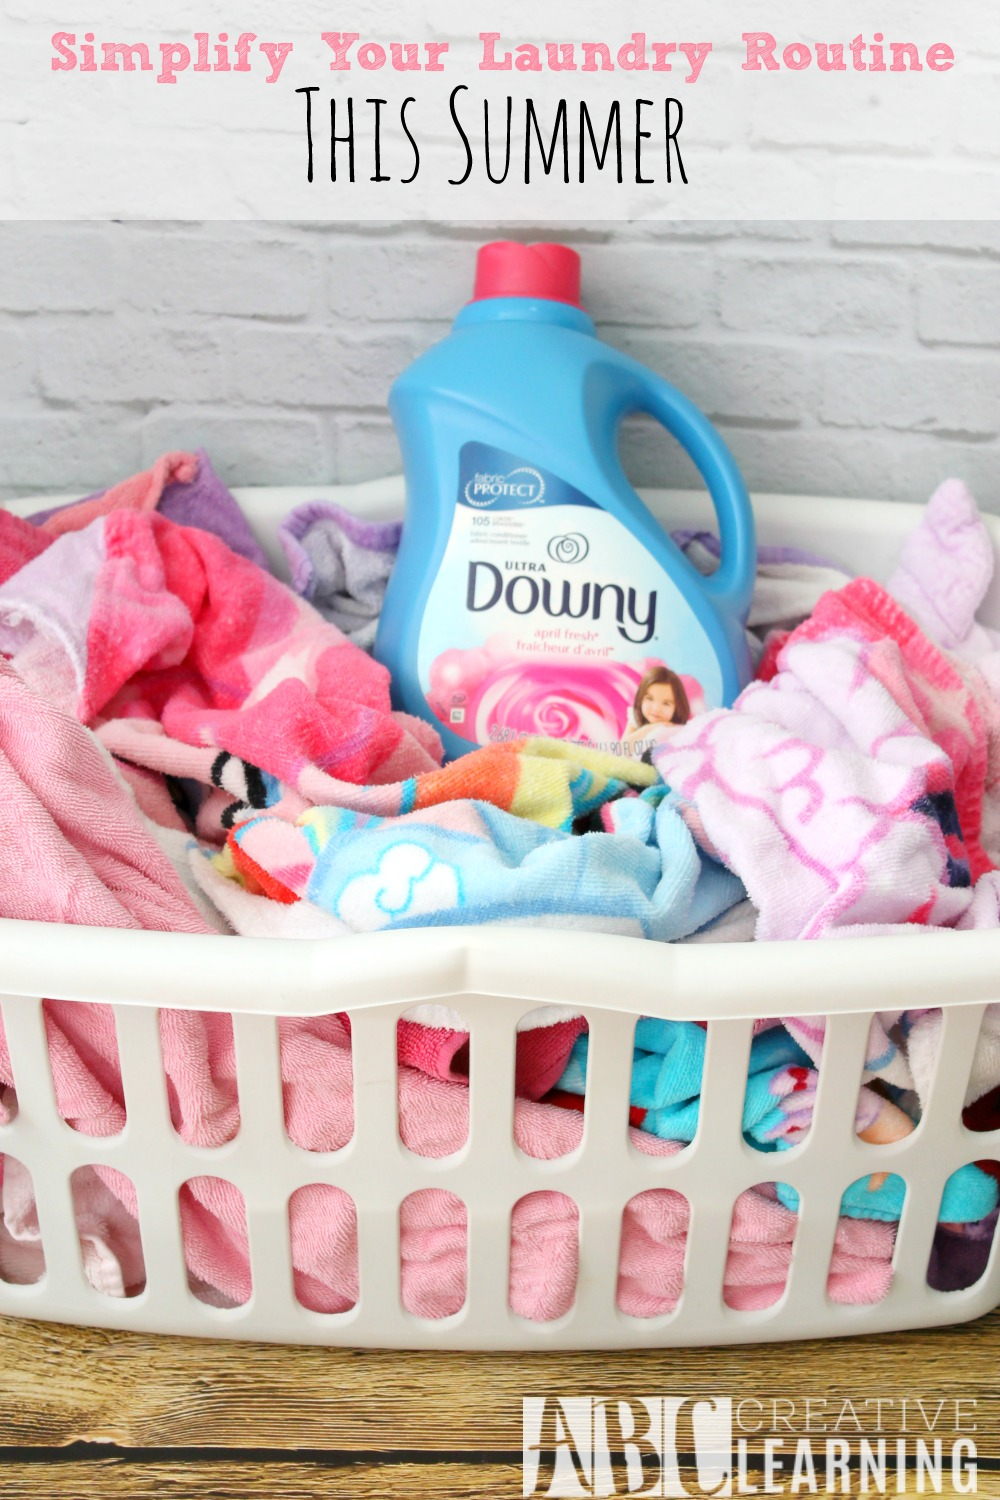 Simplify Your Laundry Routine This Summer